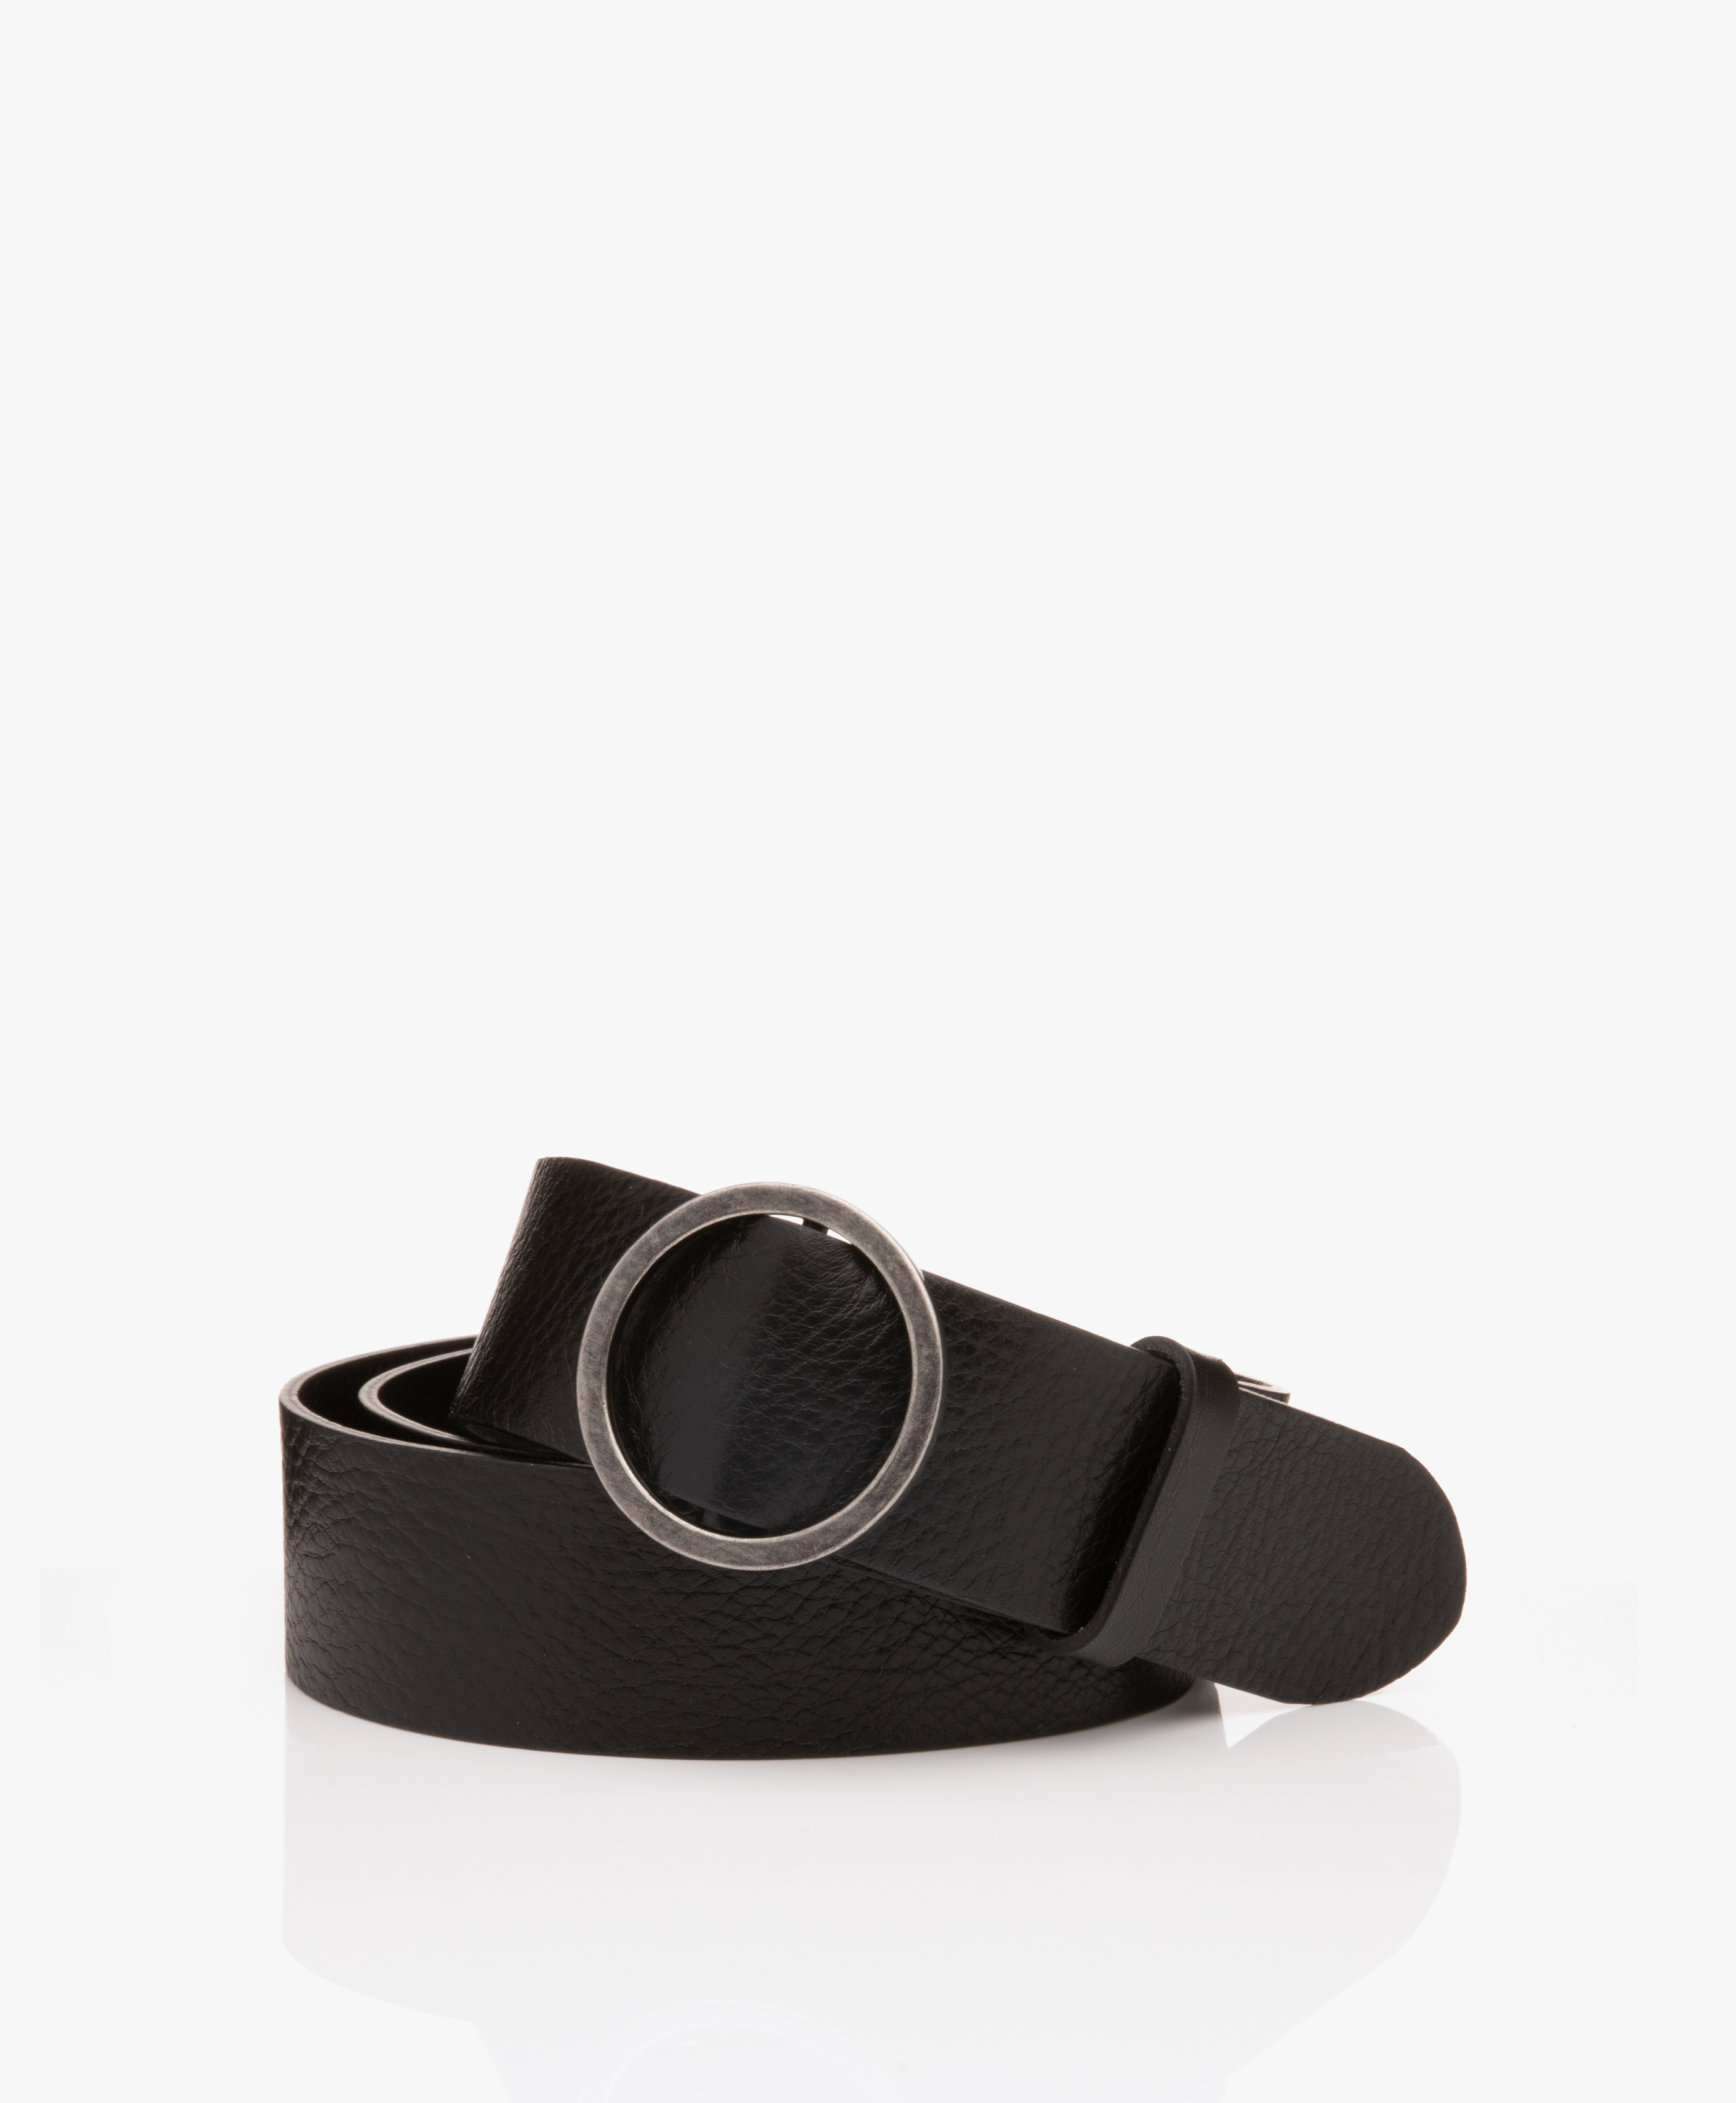 Immagine di American Vintage Belt Leather Atimoy with Ring Buckle in Black